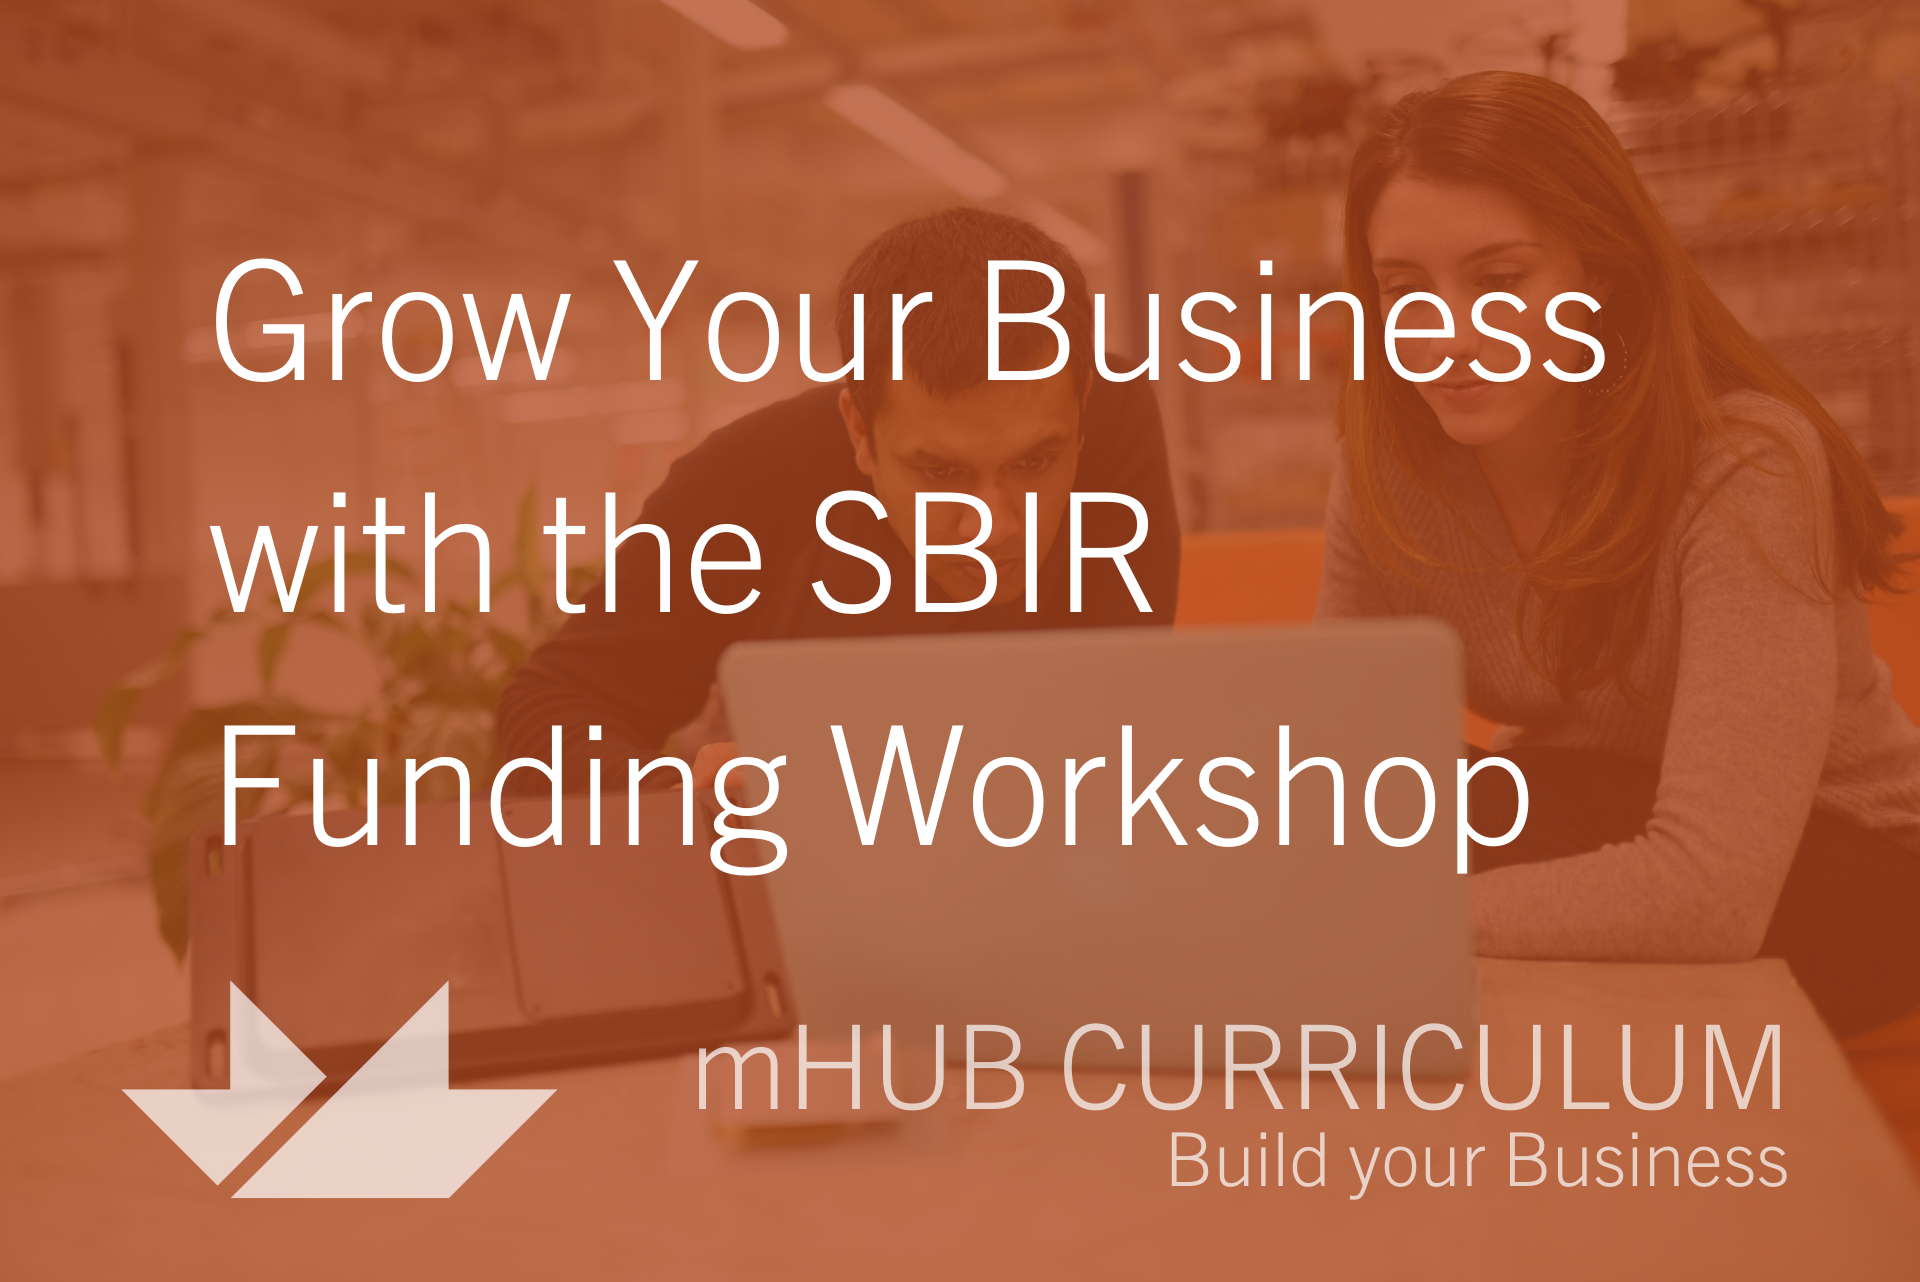 Grow Your Business with the SBIR Funding Workshop